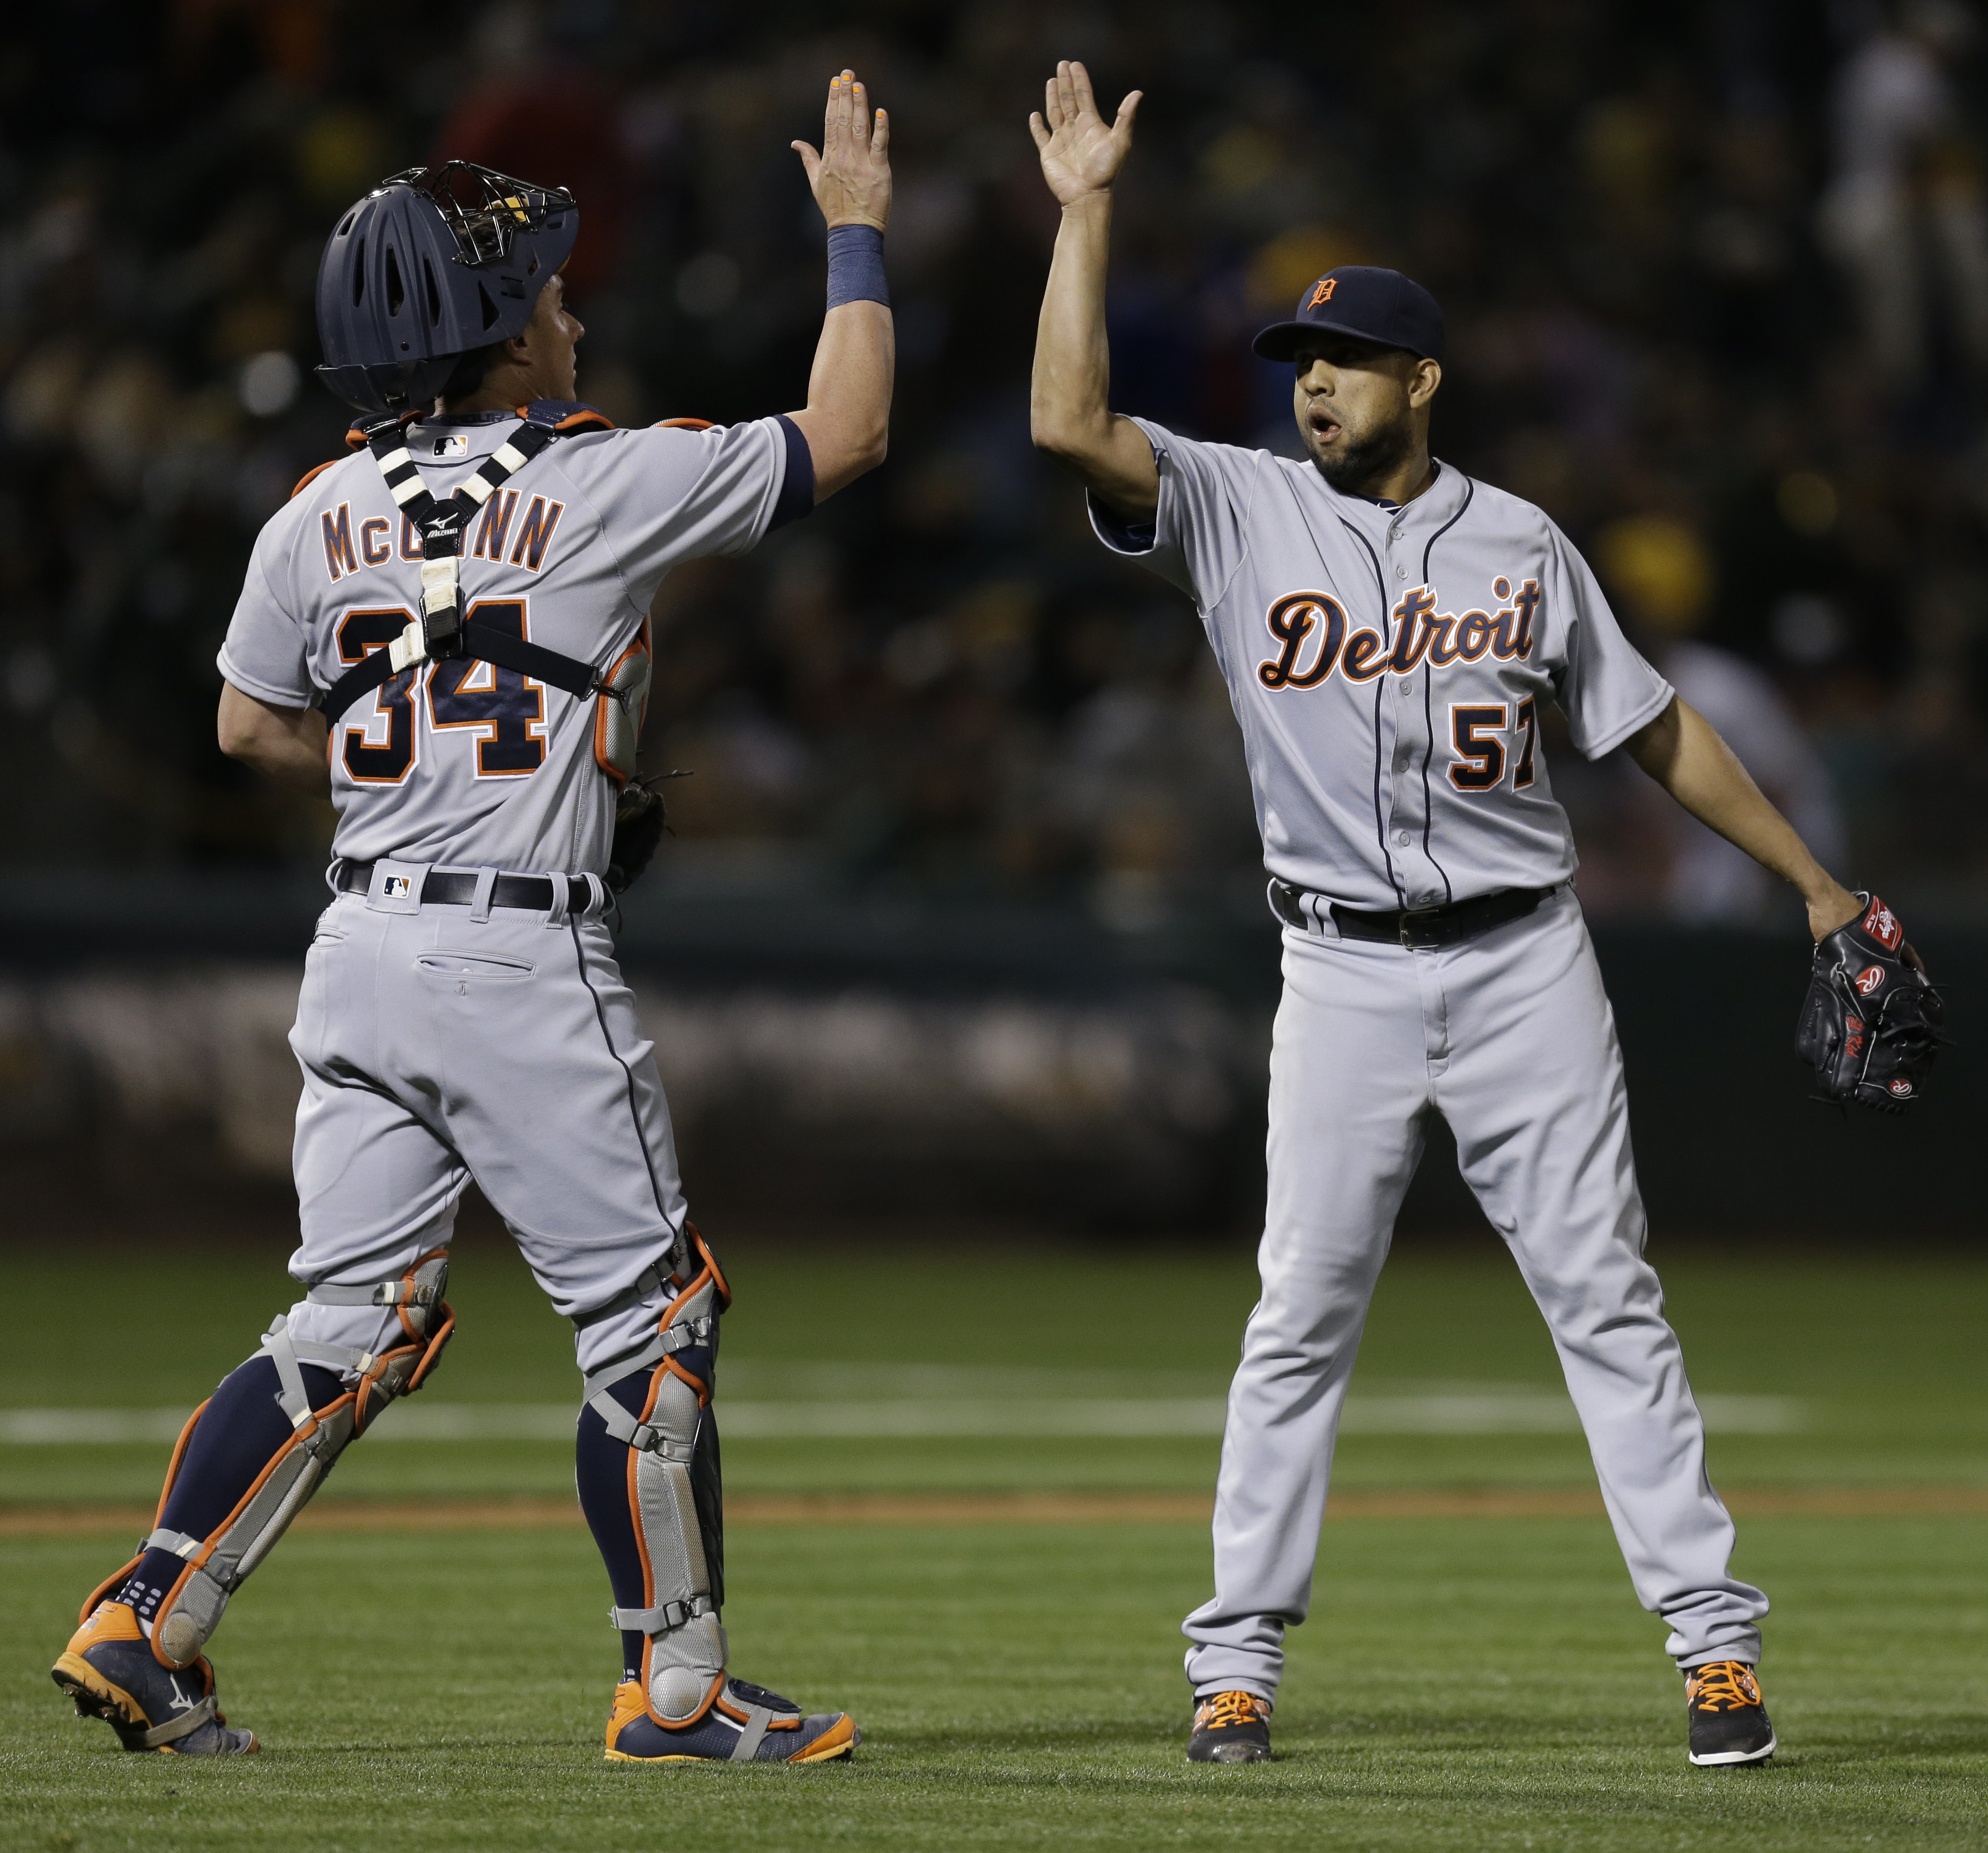 Detroit Tigers pitcher Francisco Rodriguez, right, celebrates with James McCann after the team's 4-1 win over the Oakland Athletics in a baseball game Friday, May 27, 2016, in Oakland, Calif. (AP Photo/Ben Margot)